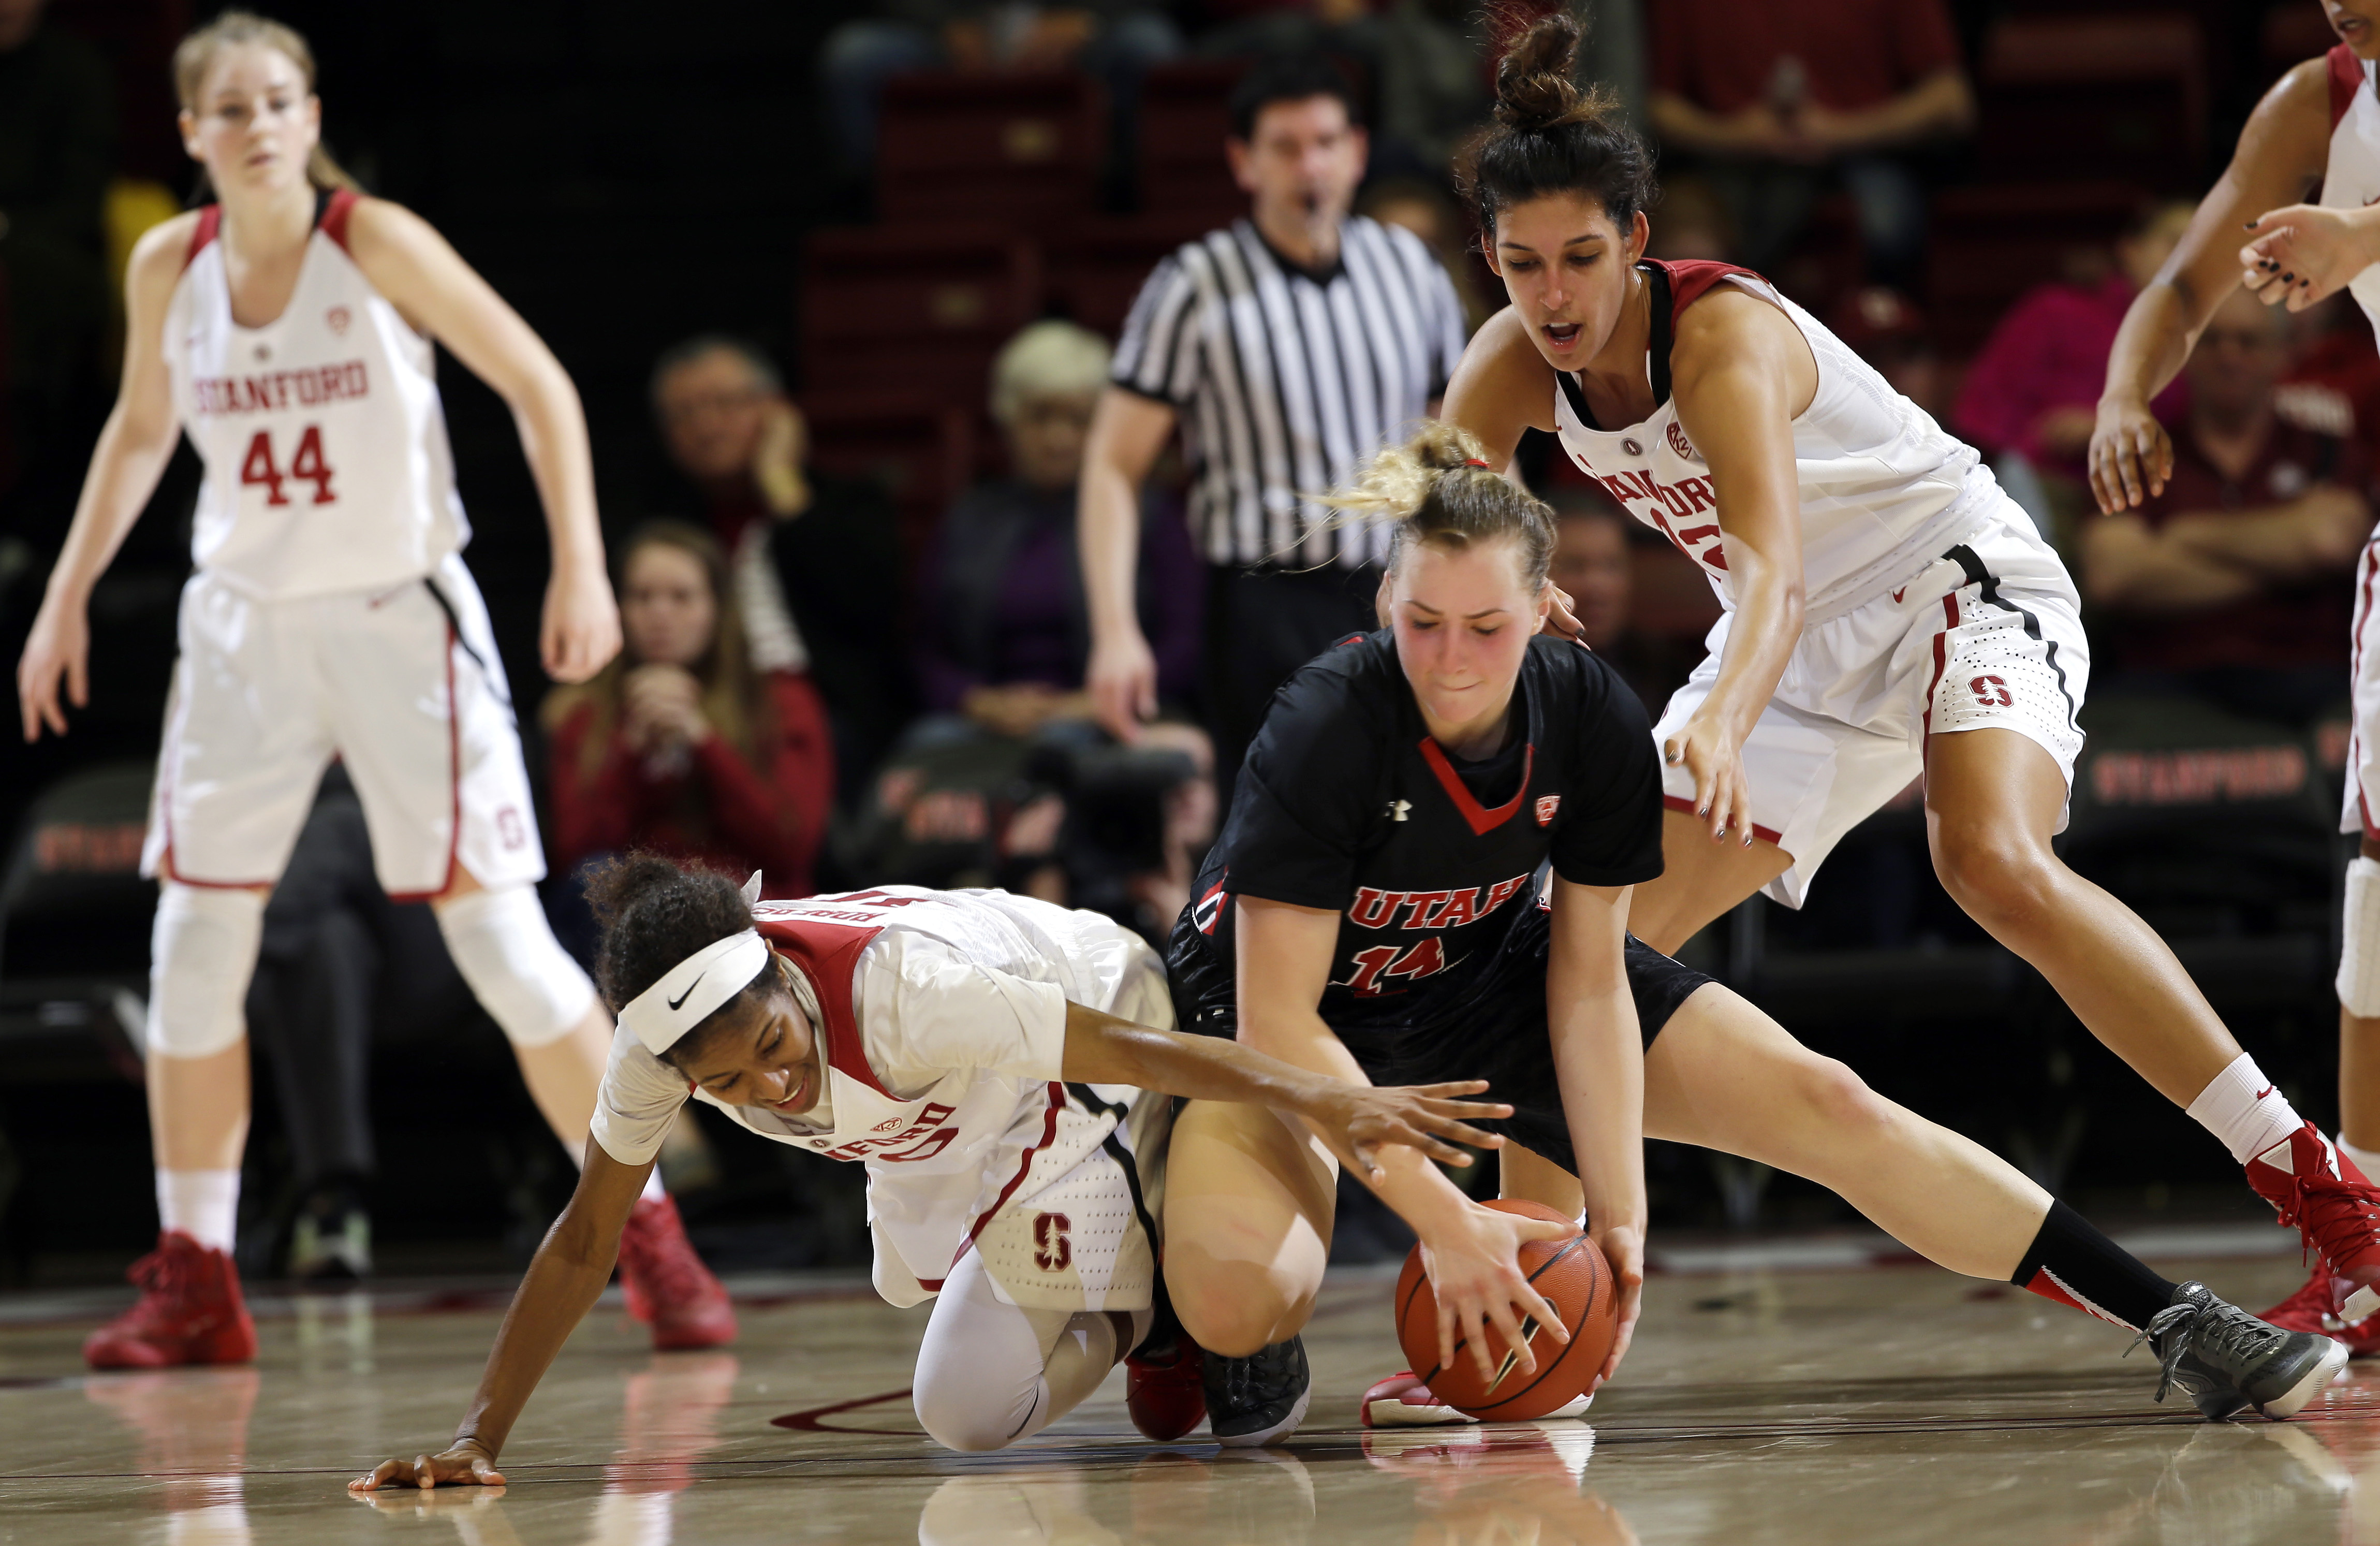 Utah guard Paige Crozon, center, grasps the ball between Stanford guard Briana Roberson, left, and forward Kailee Johnson, right, during the second half of an NCAA college basketball game Friday, Jan. 8, 2016, in Stanford, Calif. Stanford won 72-52. (AP P